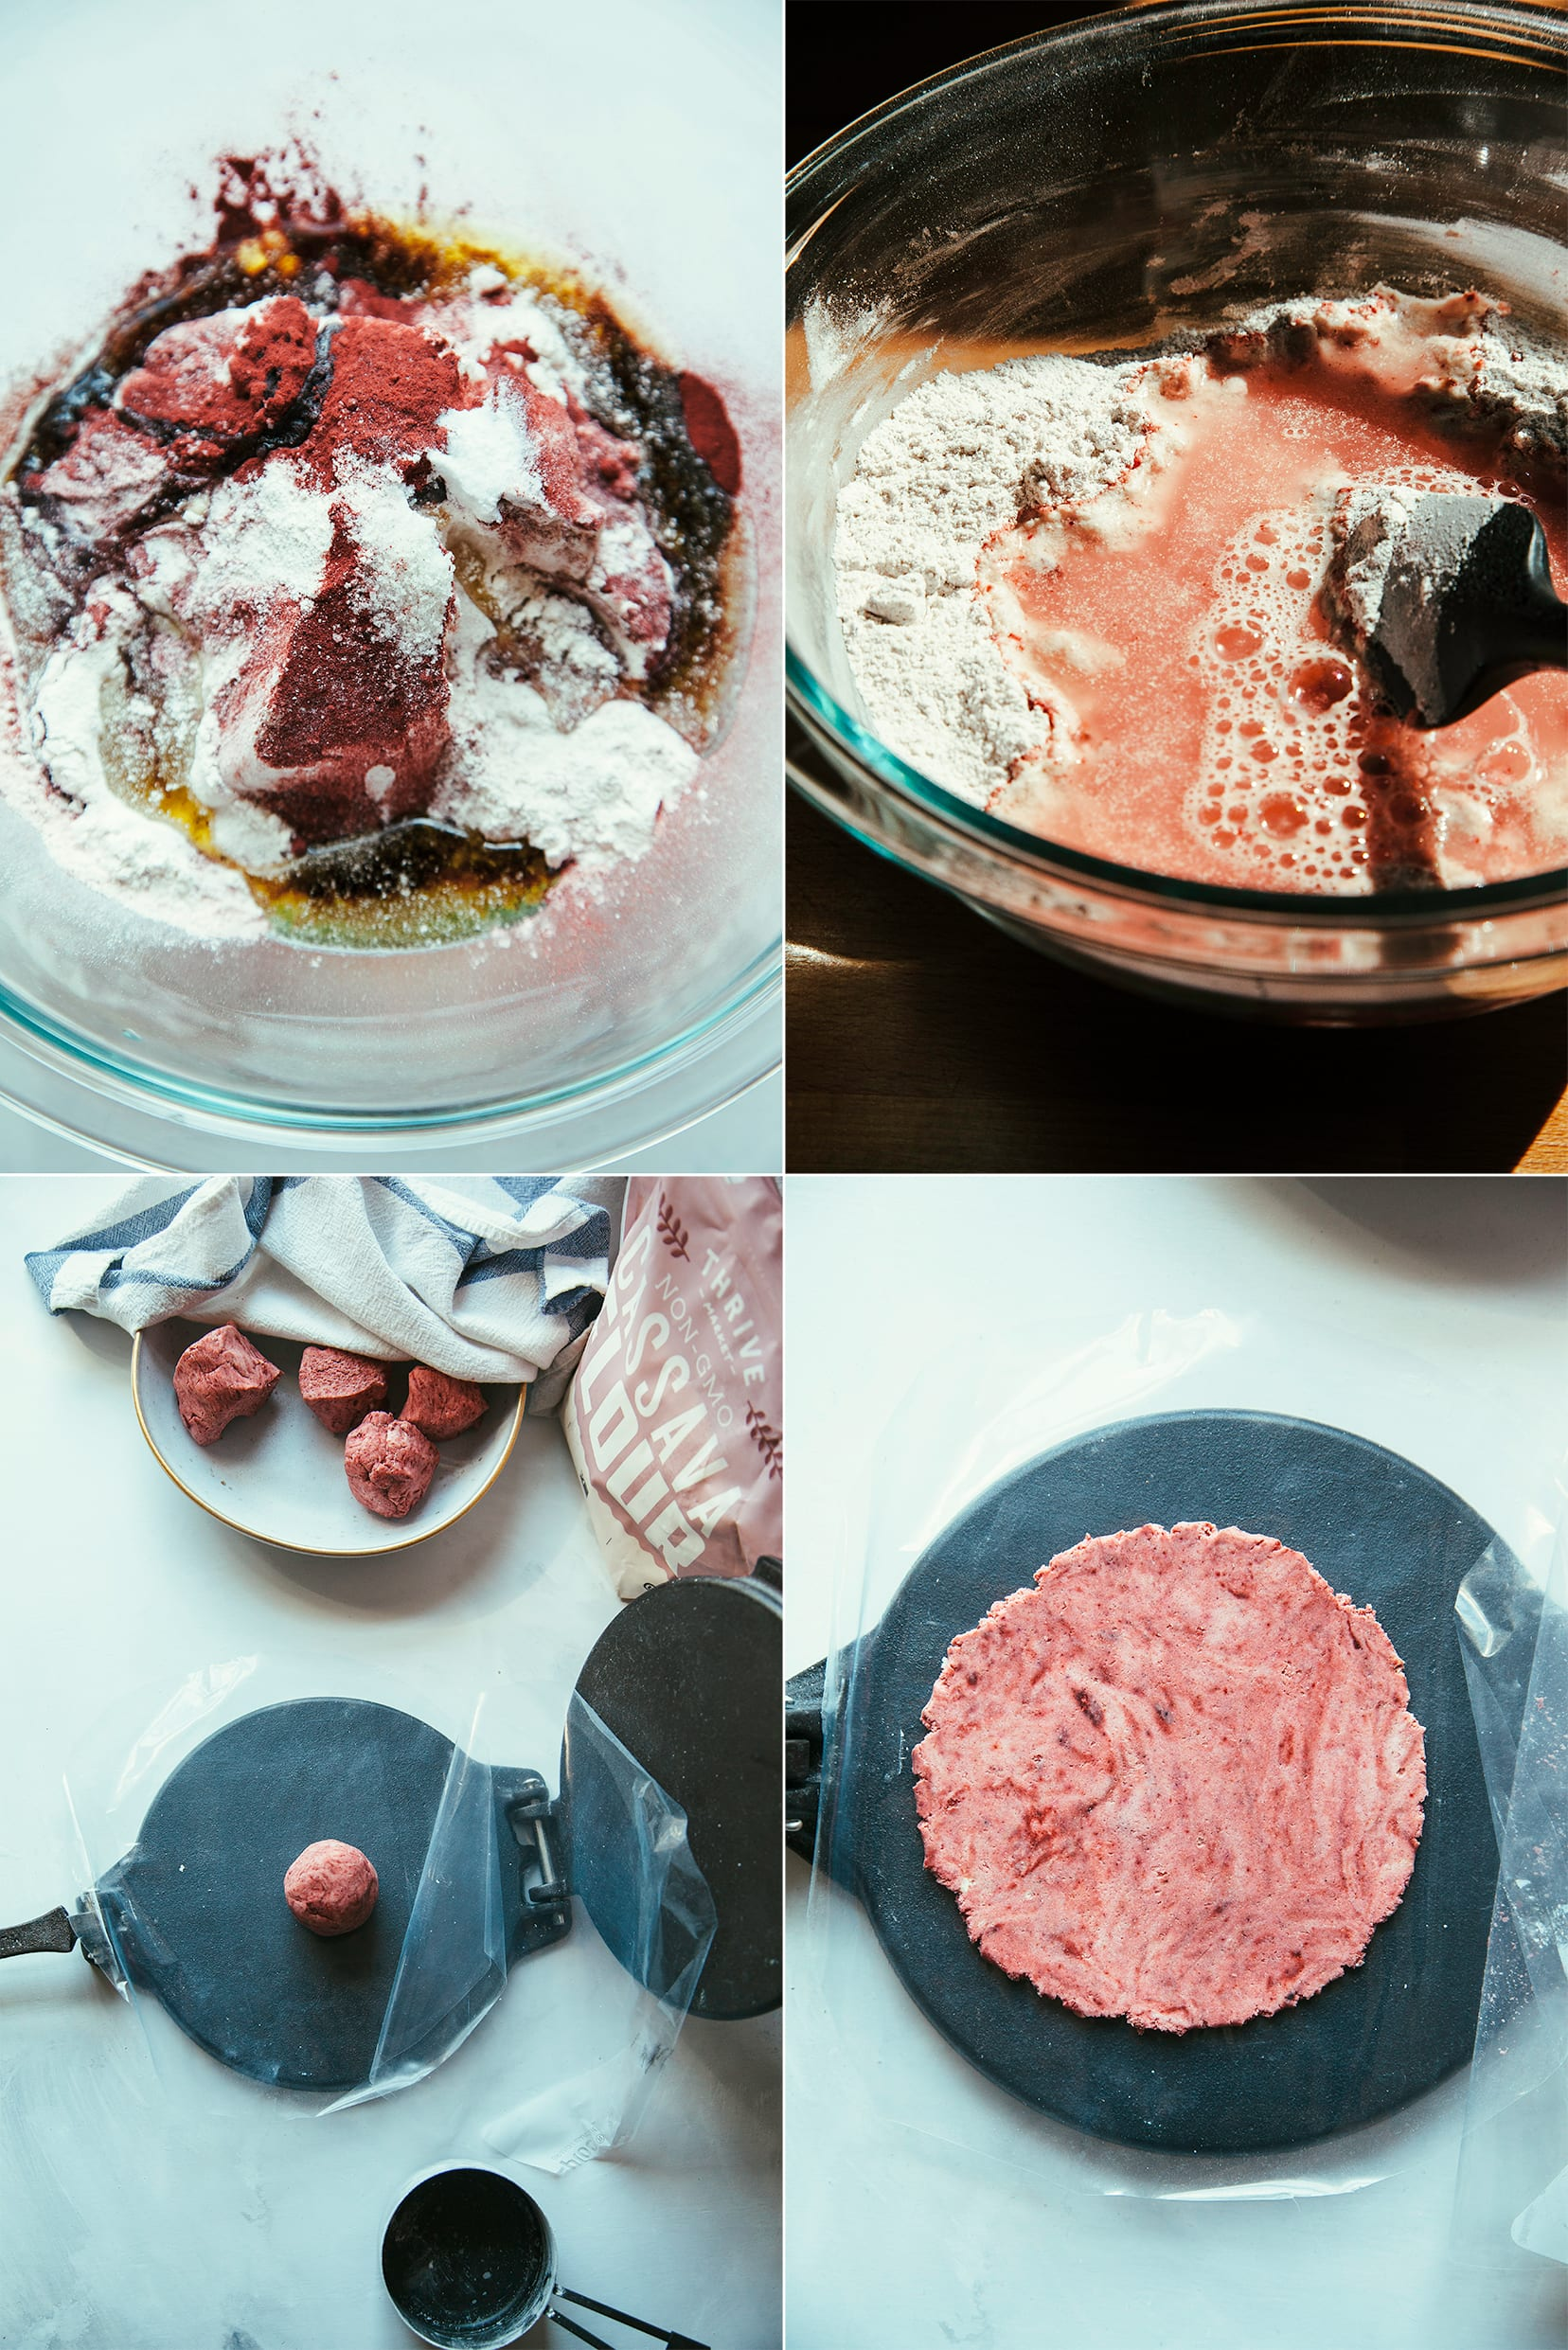 Homemade Cassava Tortillas with Beet Powder - The First Mess